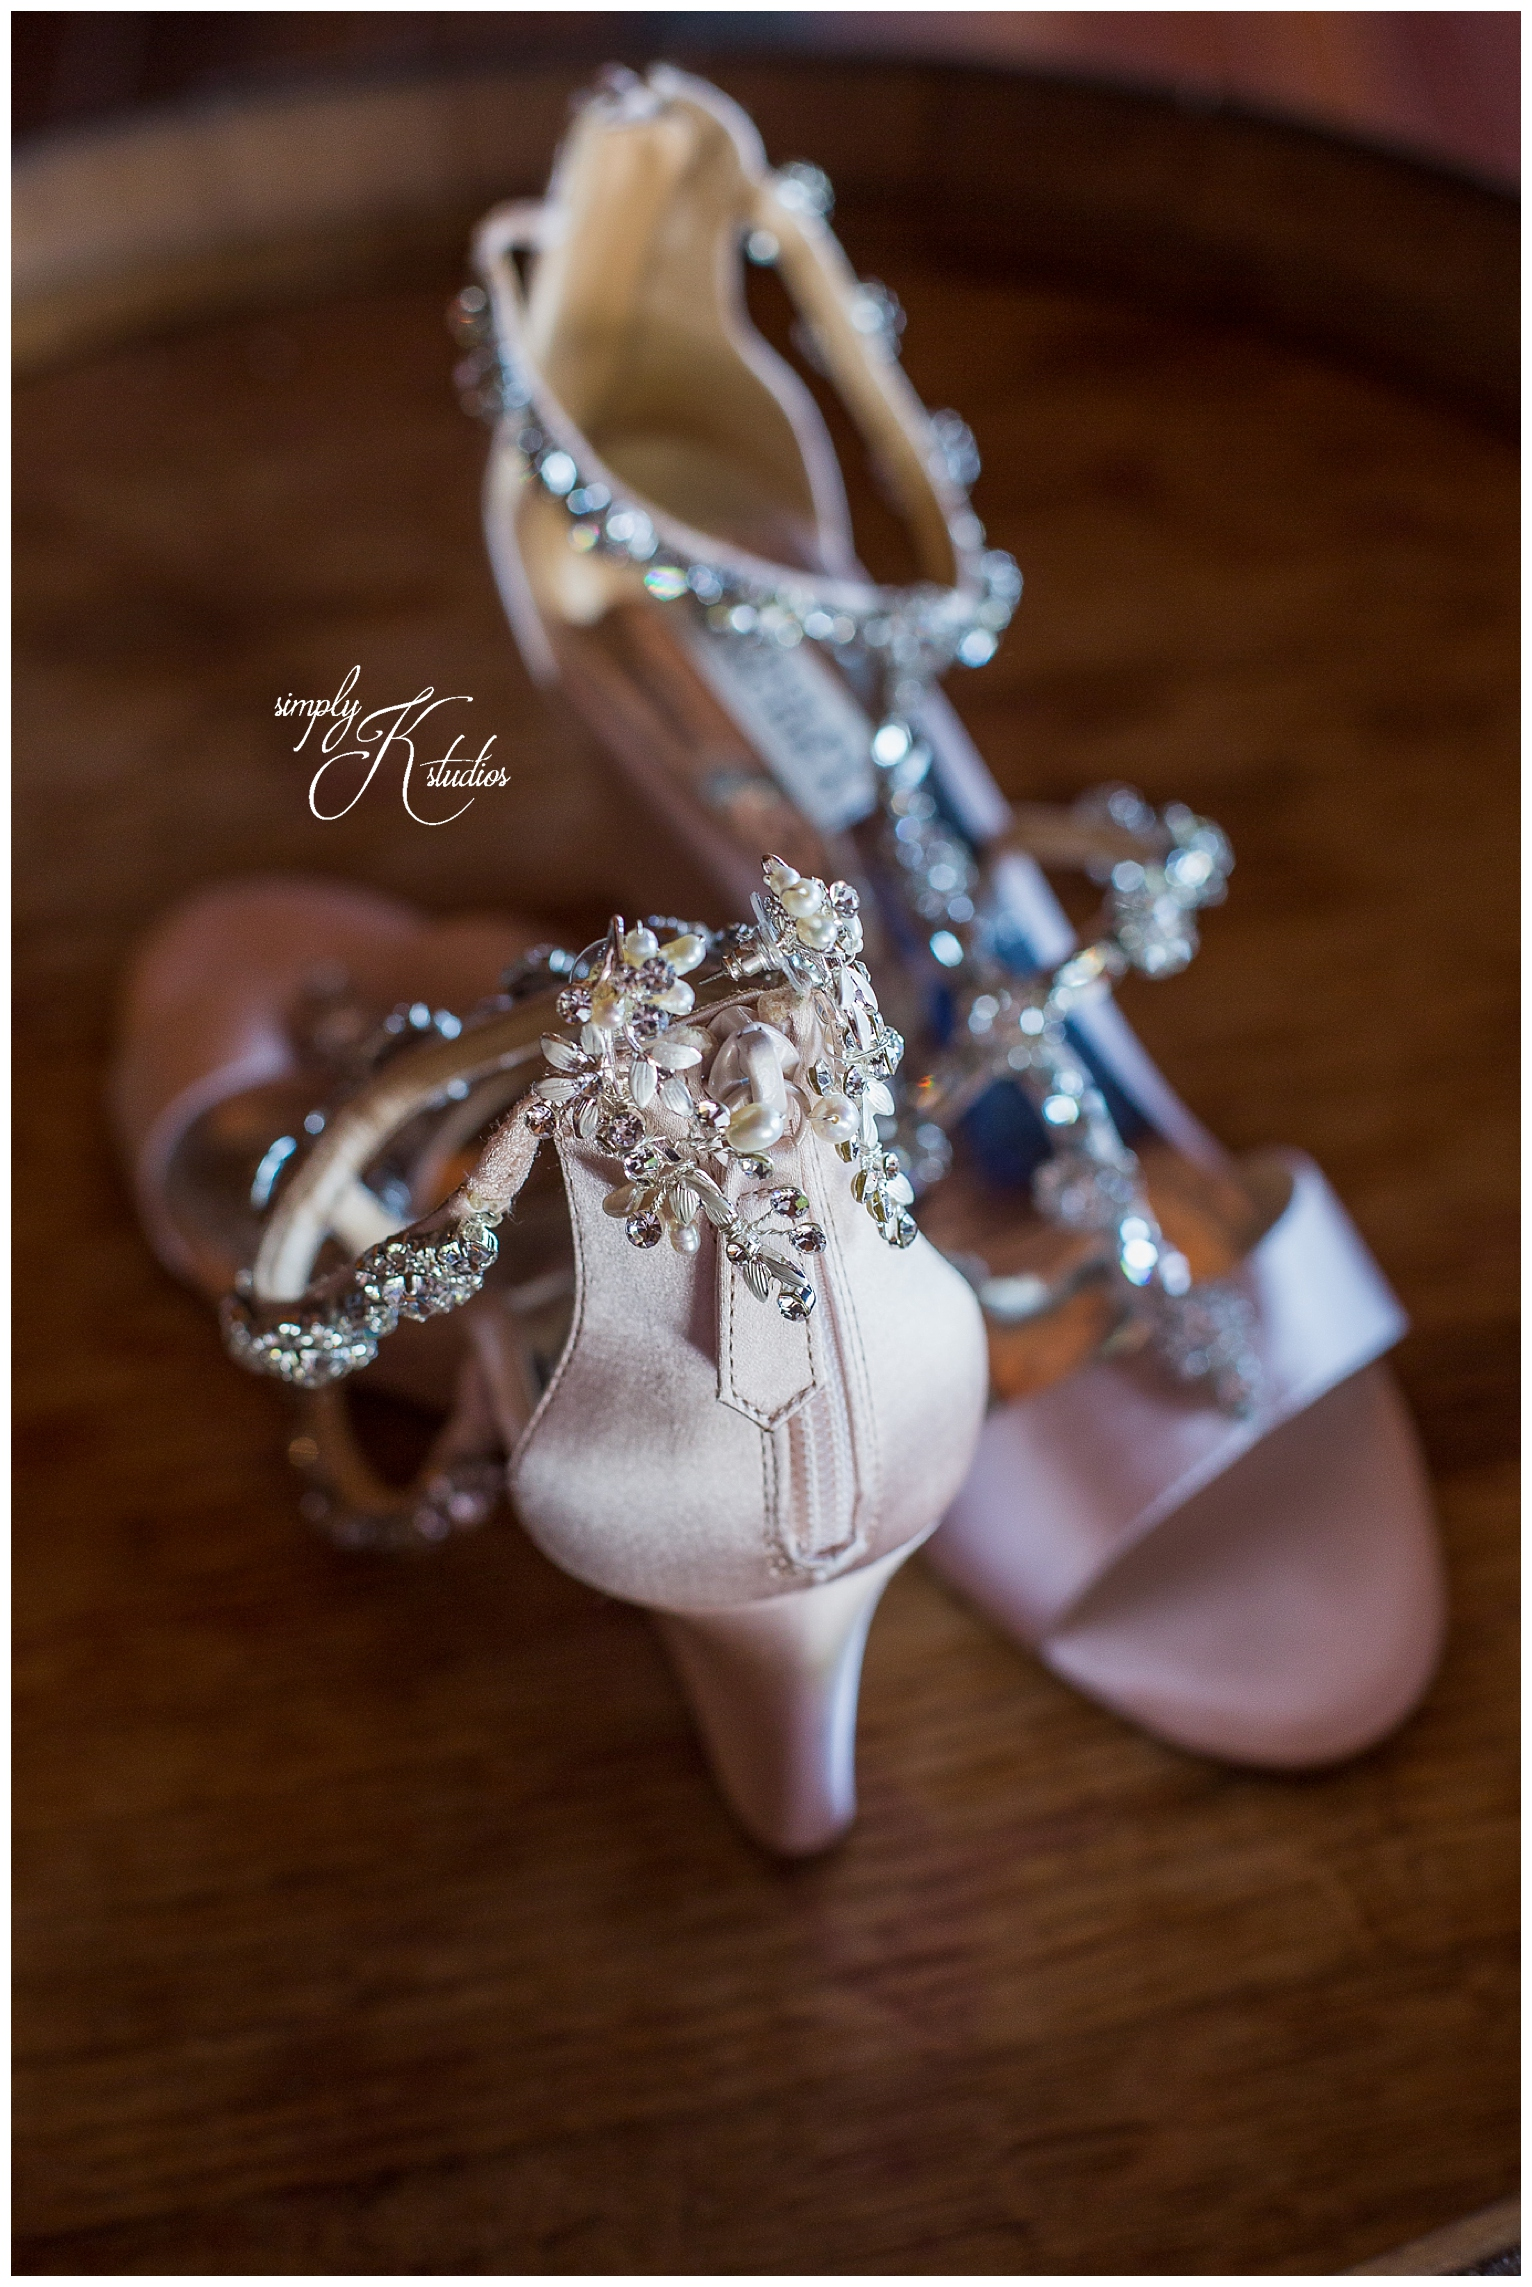 07 Badgley Mischka wedding shoes.jpg